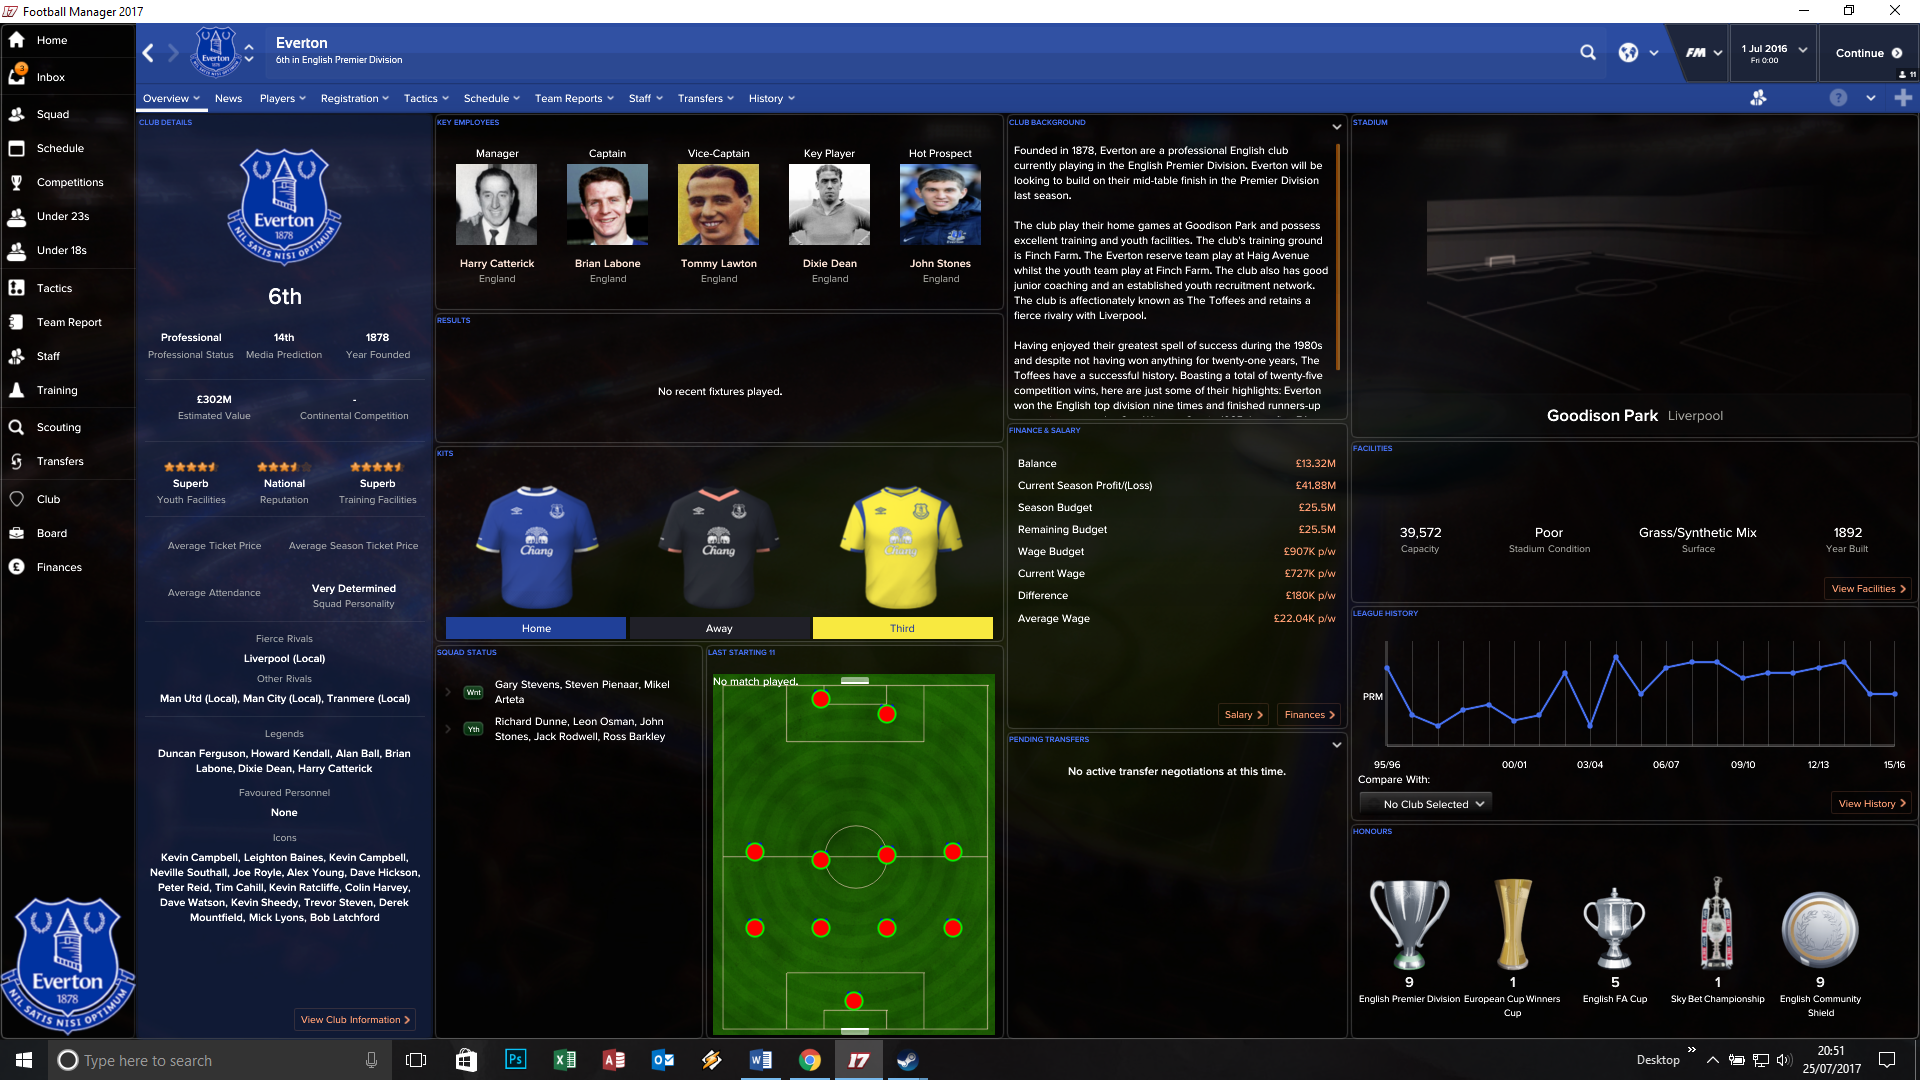 Everton_Front.png